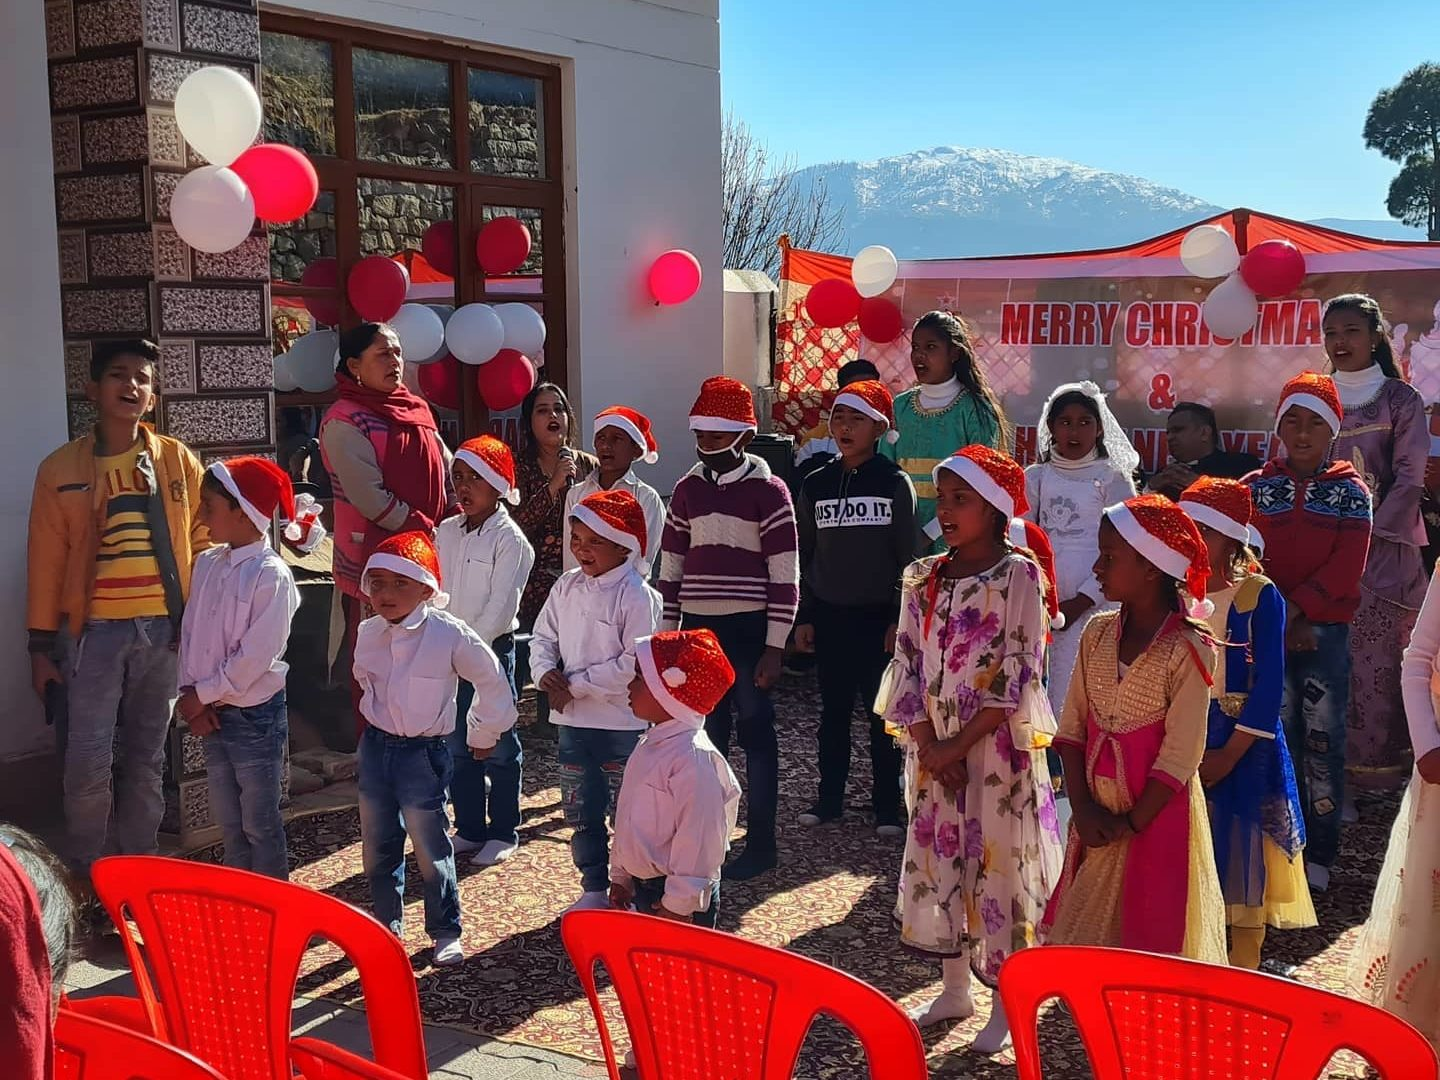 outdoor christmas celebration in indian village